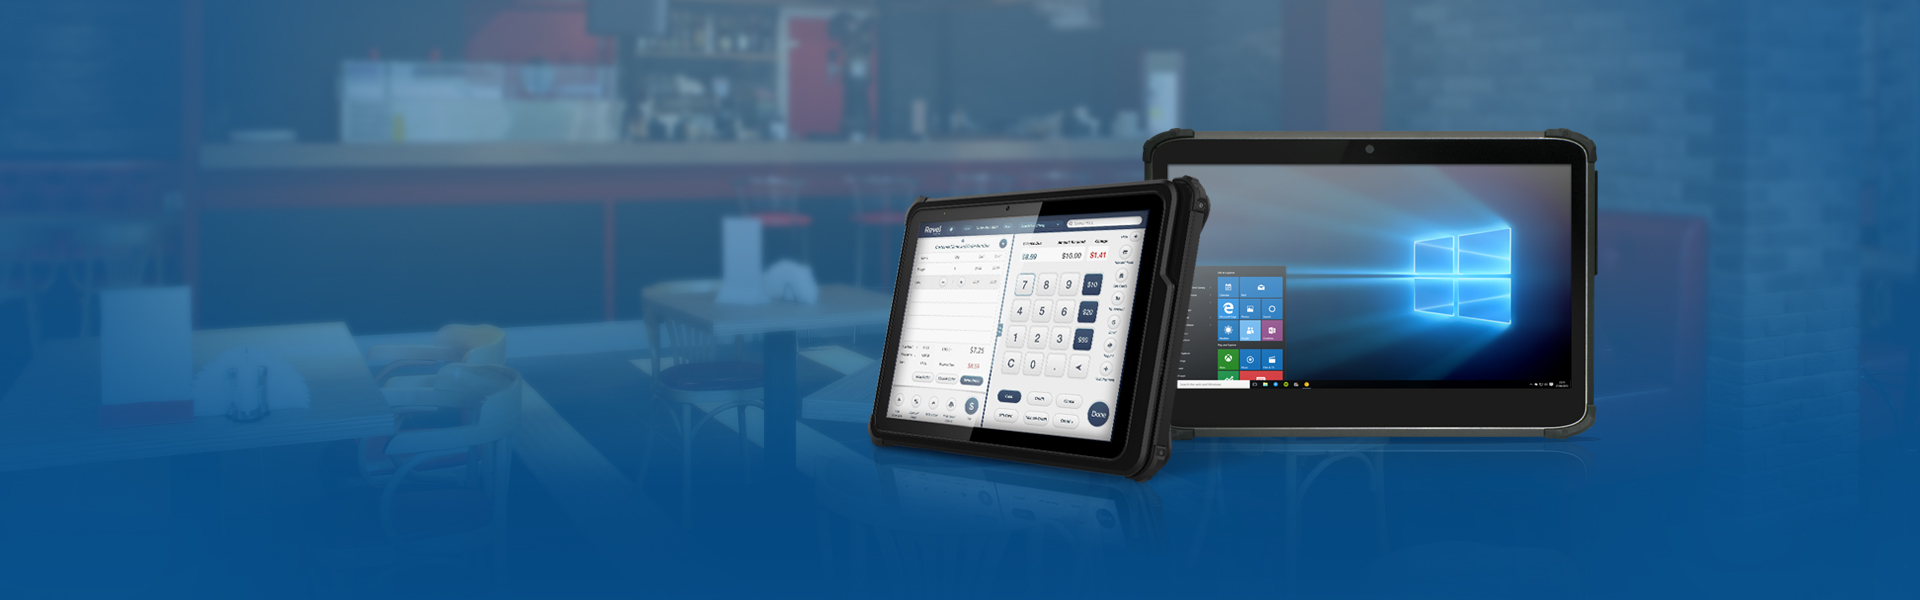 Mobile POS Tablets